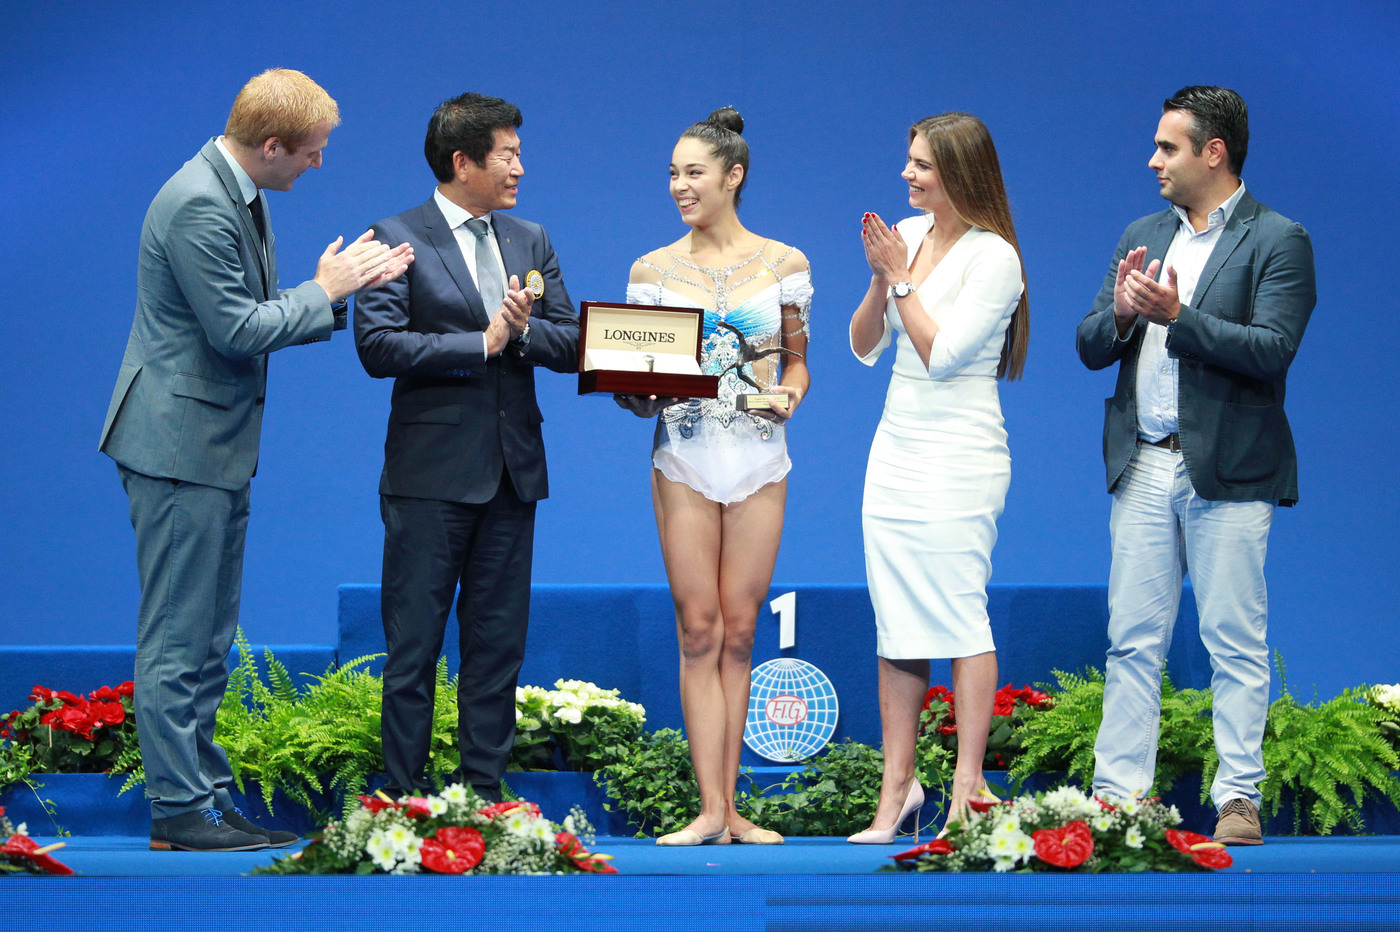 Longines Gymnastics Event: Italy's Alexandra Agiurgiuculese presented with the Longines Prize for Elegance at the 35th Rhythmic Gymnastics World Championships 2017 in Pesaro 1